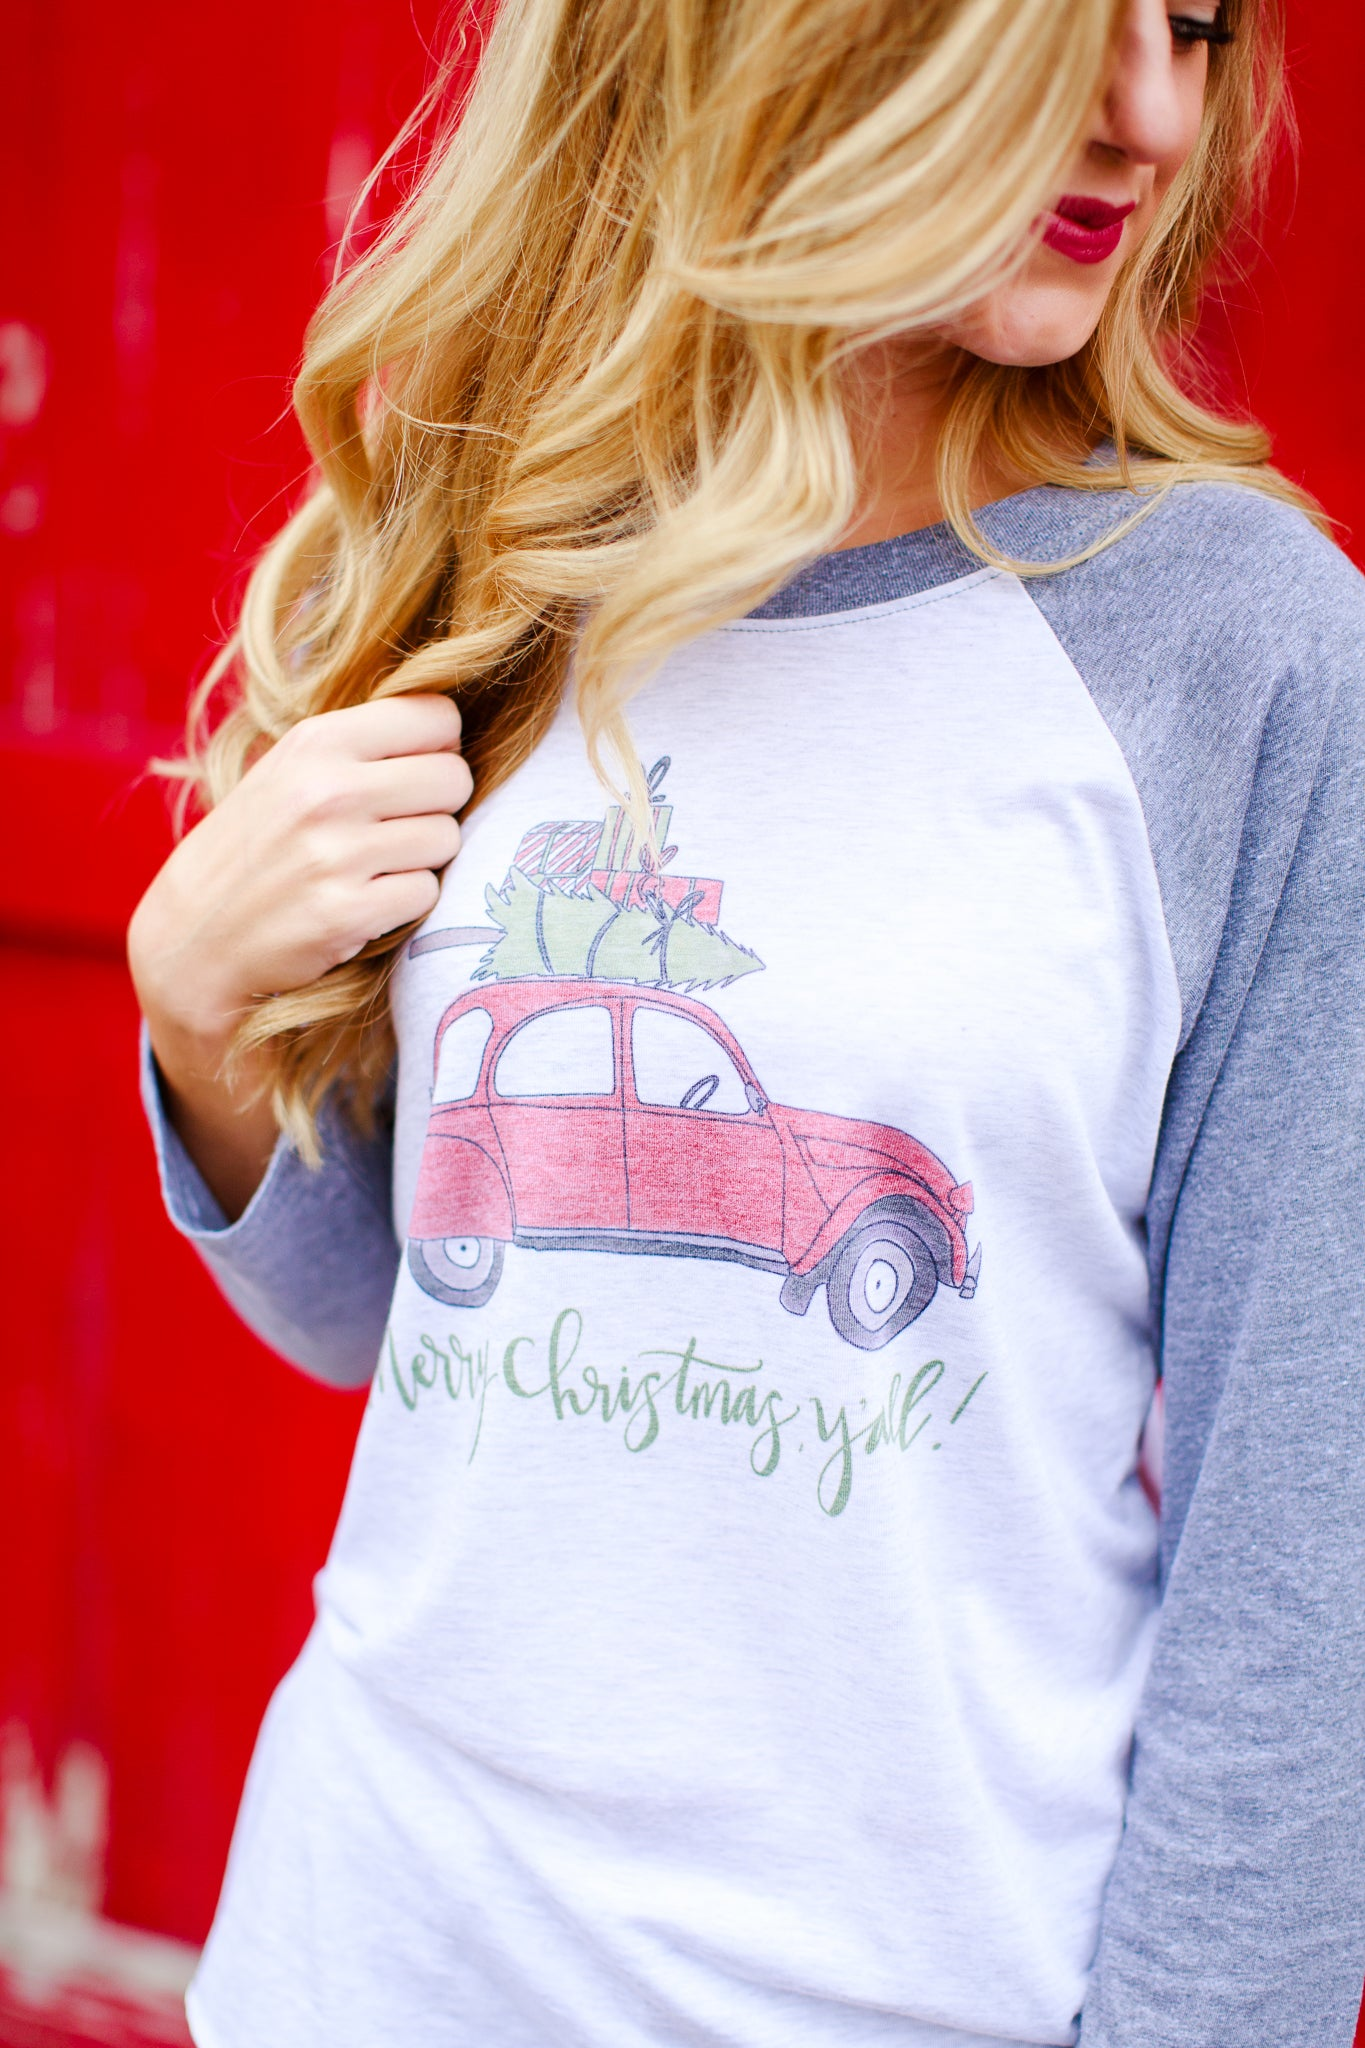 Merry Christmas Y'all Raglan Tee